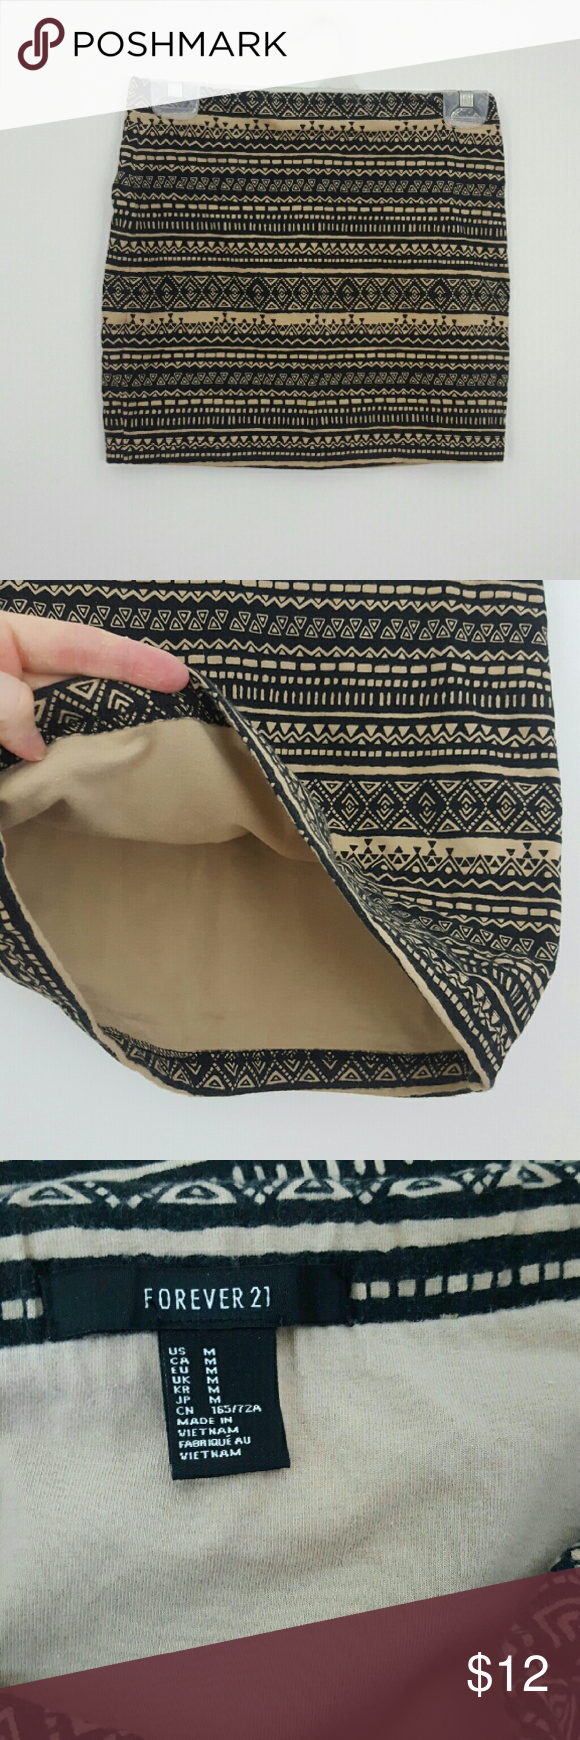 """F21 Tribal Stretch Mini Skirt Super cute Forever 21 mini skirt ! Black and beige tribal pattern. Extra lining in the inside for added support. Size medium, measurements : waist 13"""", length 14"""". Great preloved condition. Forever 21 Skirts Mini"""